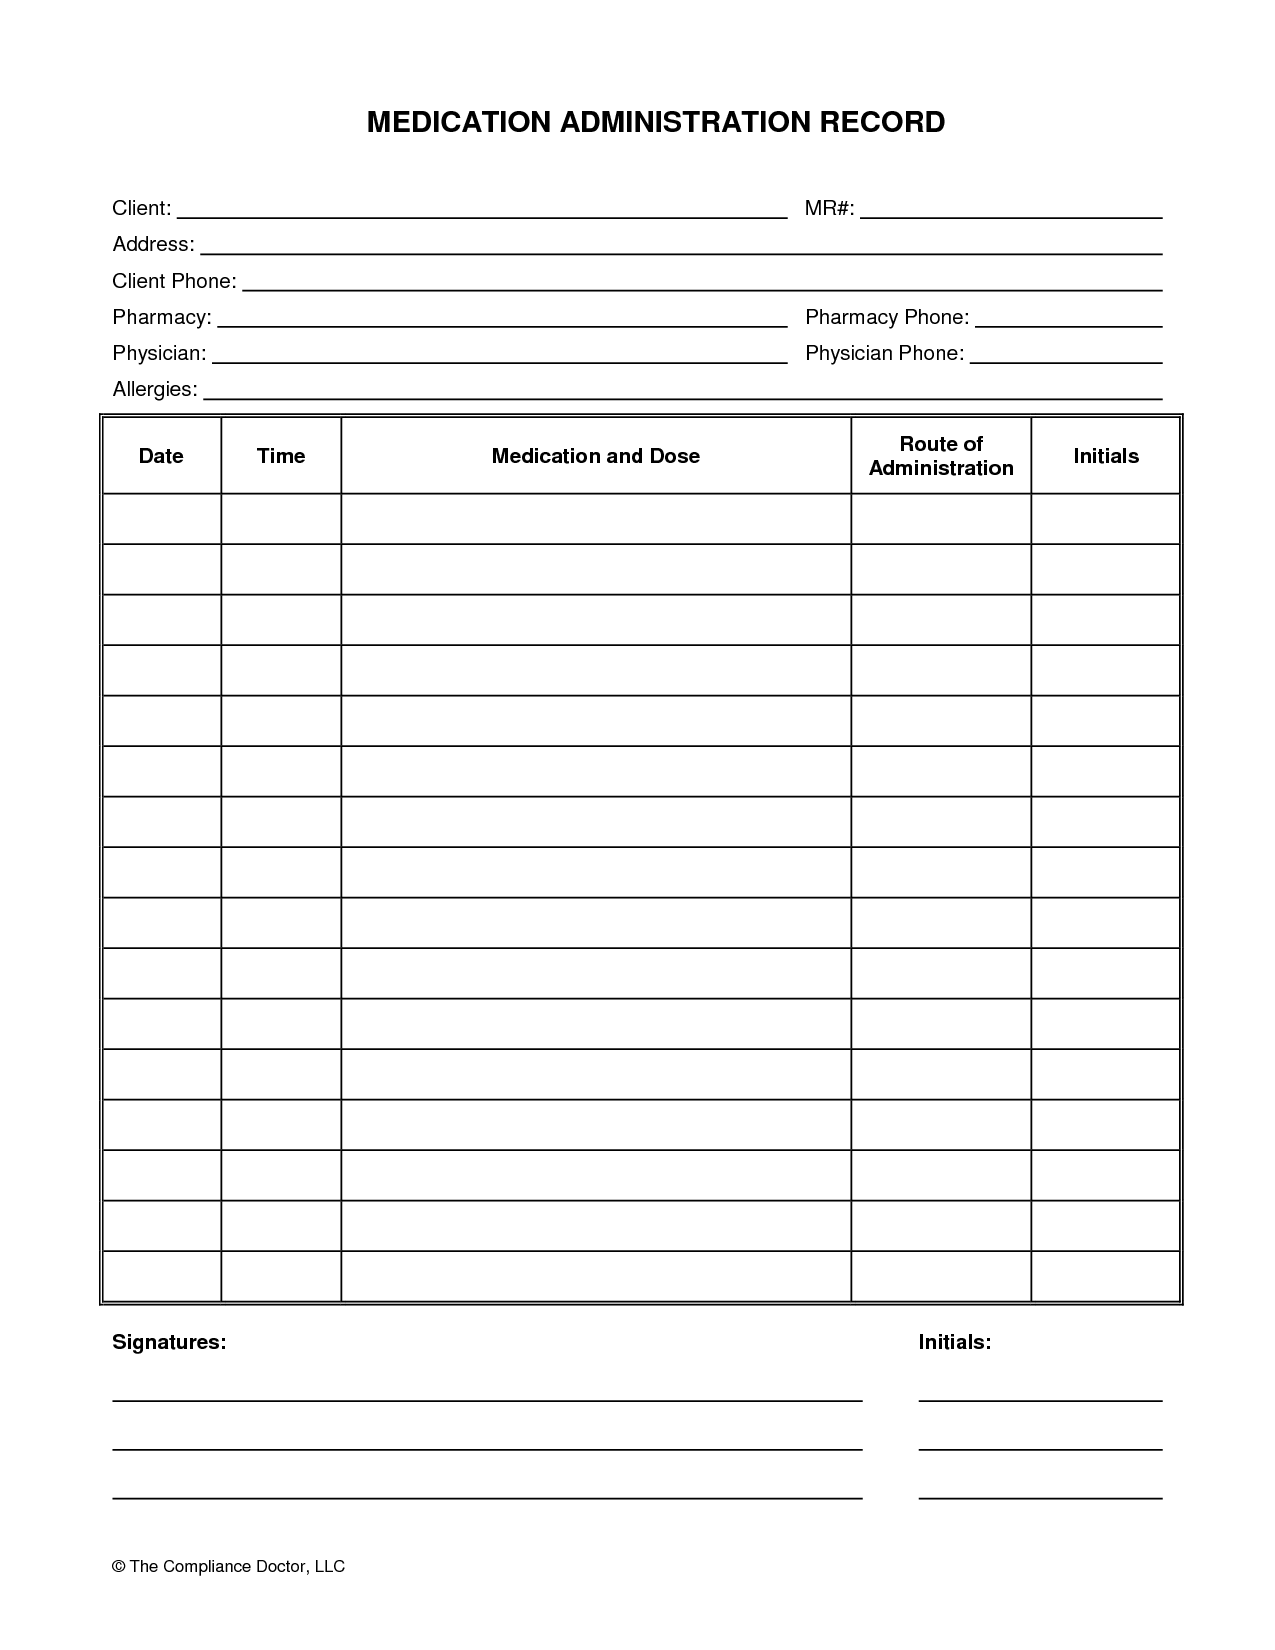 medication administration record form